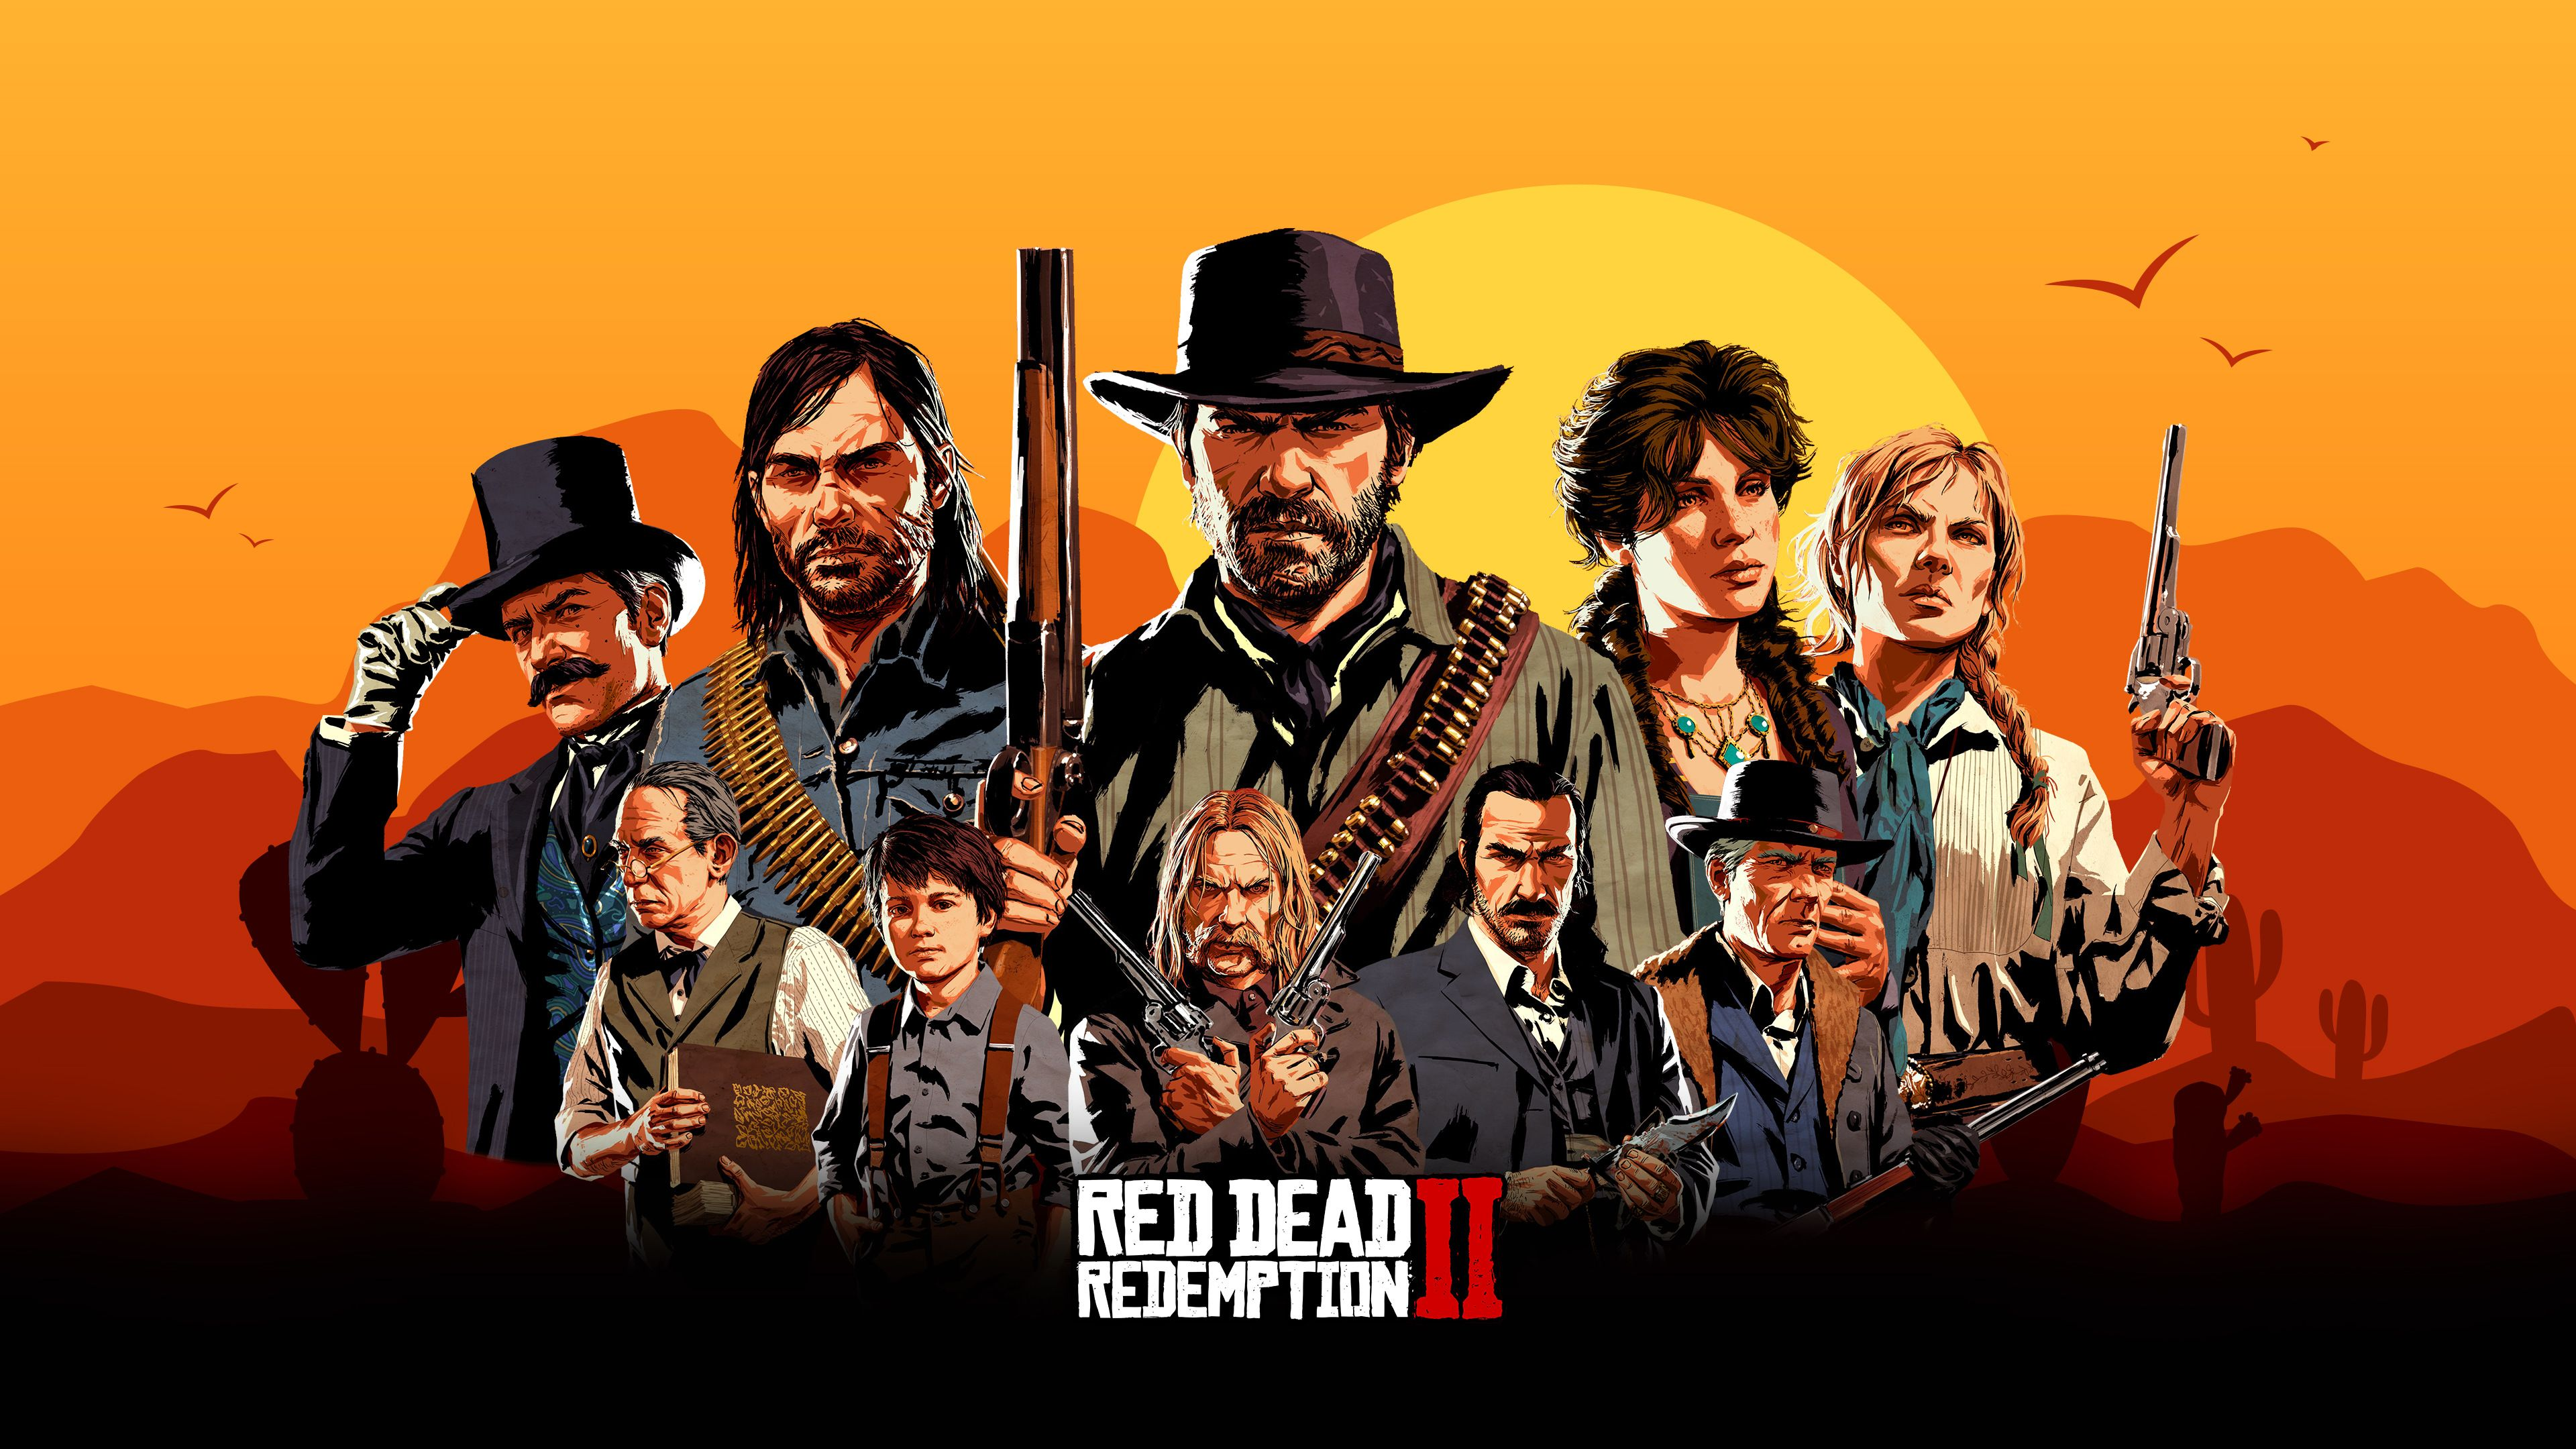 Wallpaper 4k Red Dead Redemption 2 Game Characters 2018 Games